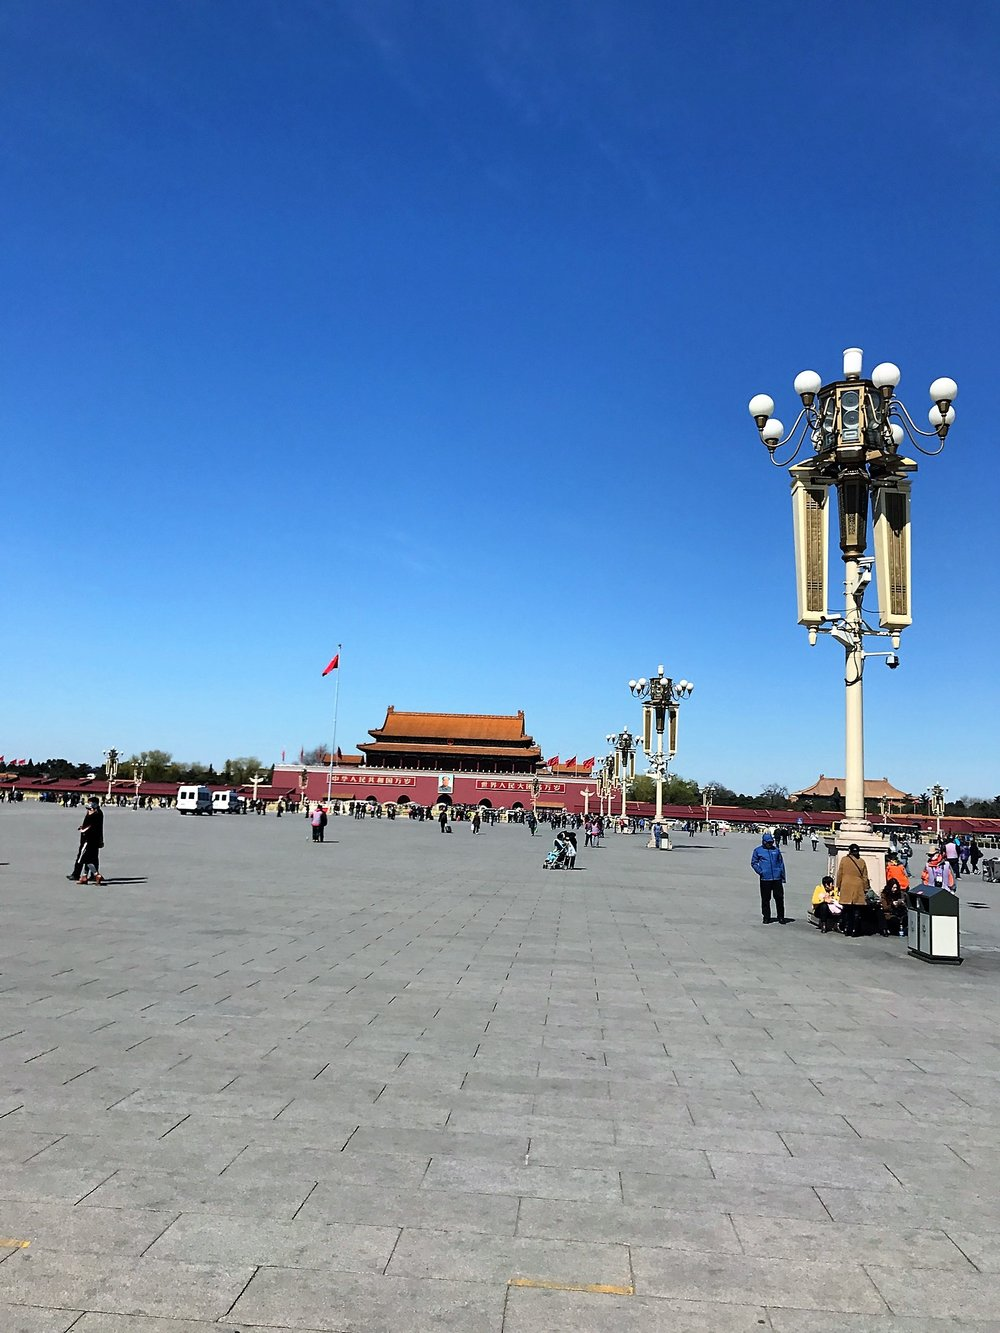 Tianamen Square from the Mausoleum. The world's largest plaza.